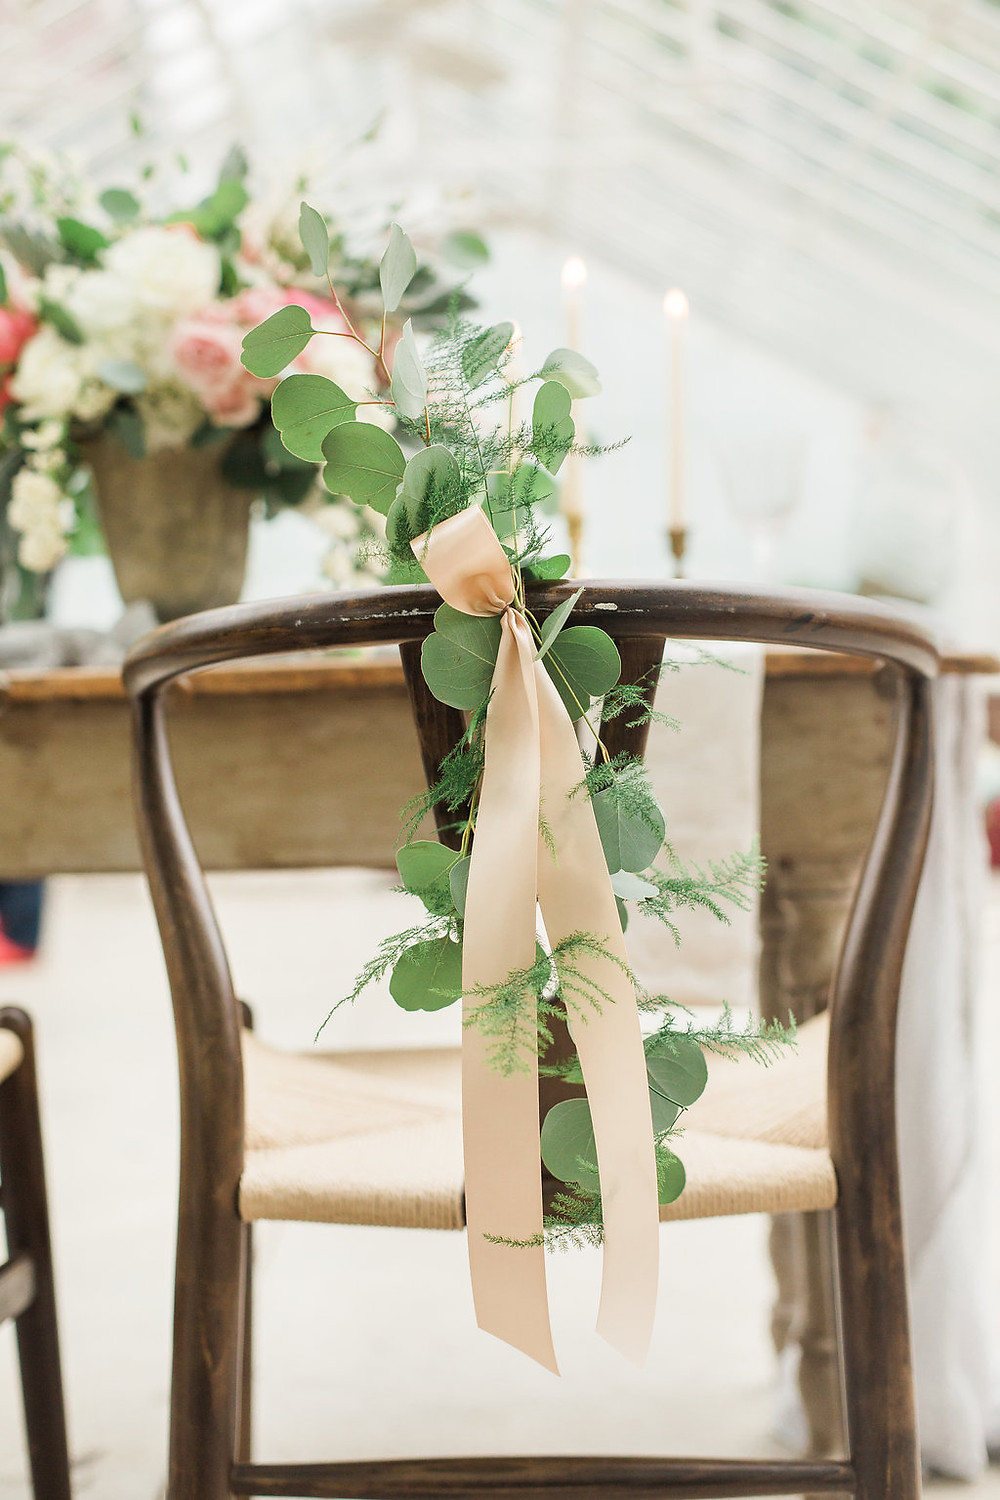 Greenhouse ceremony with farm-style sweetheart table and chairs